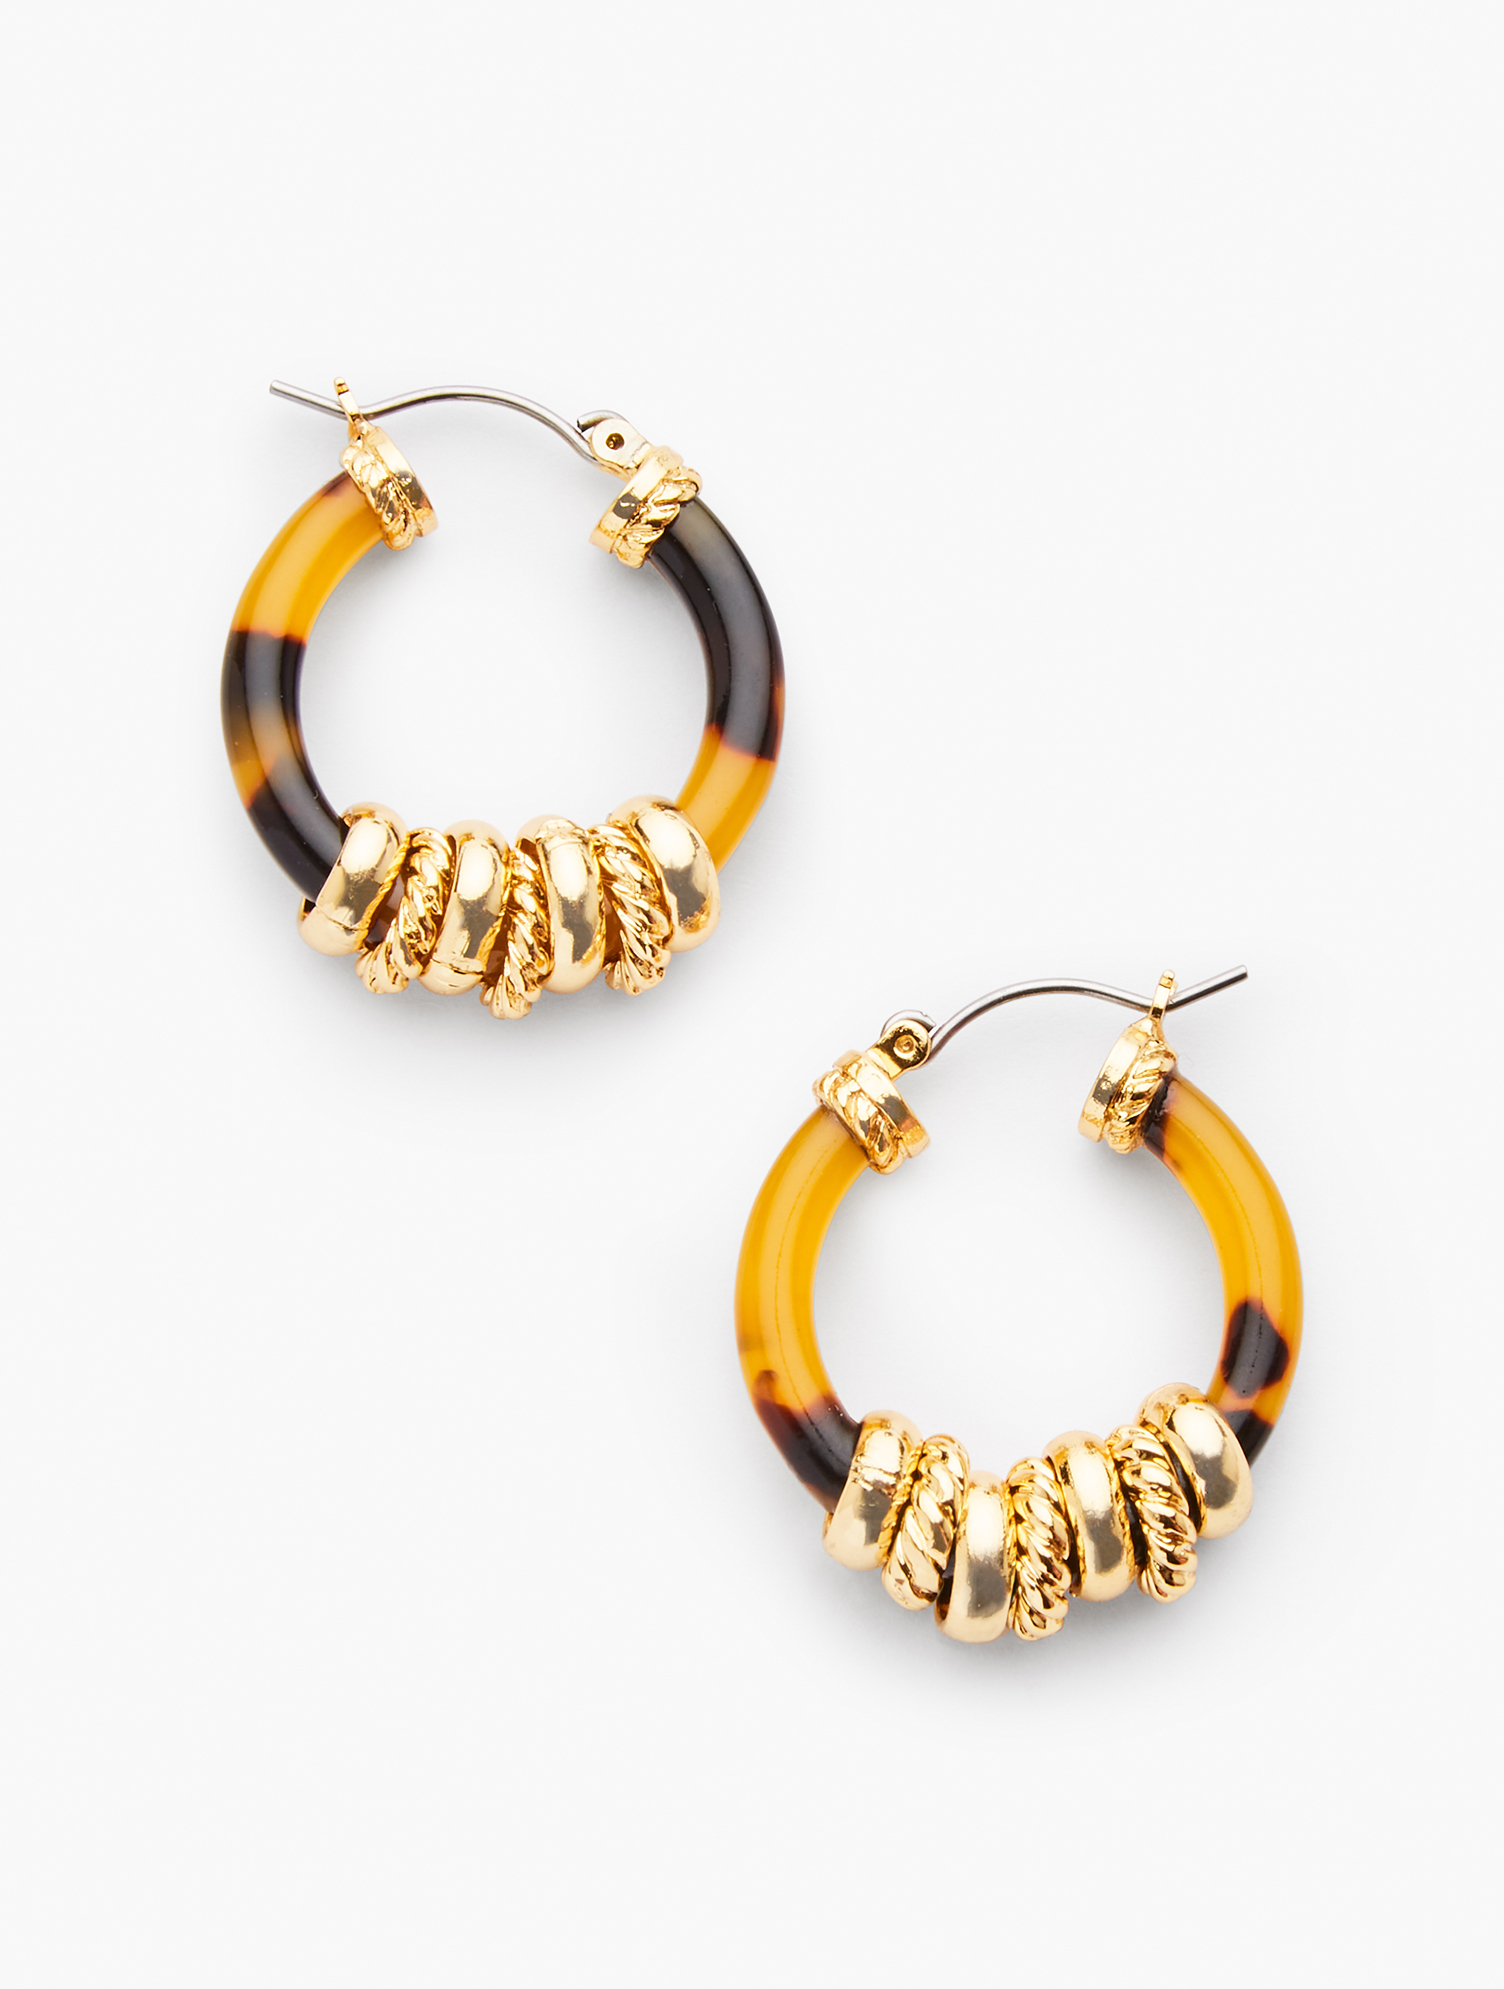 Tortoise hoops adorned with precious gold discs. Pair with our Tortoise & Gold Beaded Necklace. Features Clasp: Post Imported Fit: 1 1/2 inches Material: 60% Zinc, 39% Acetate, 1% CZ Tortoise & Gold Hoop Earrings - Tortoise/Gold - 001 Talbots